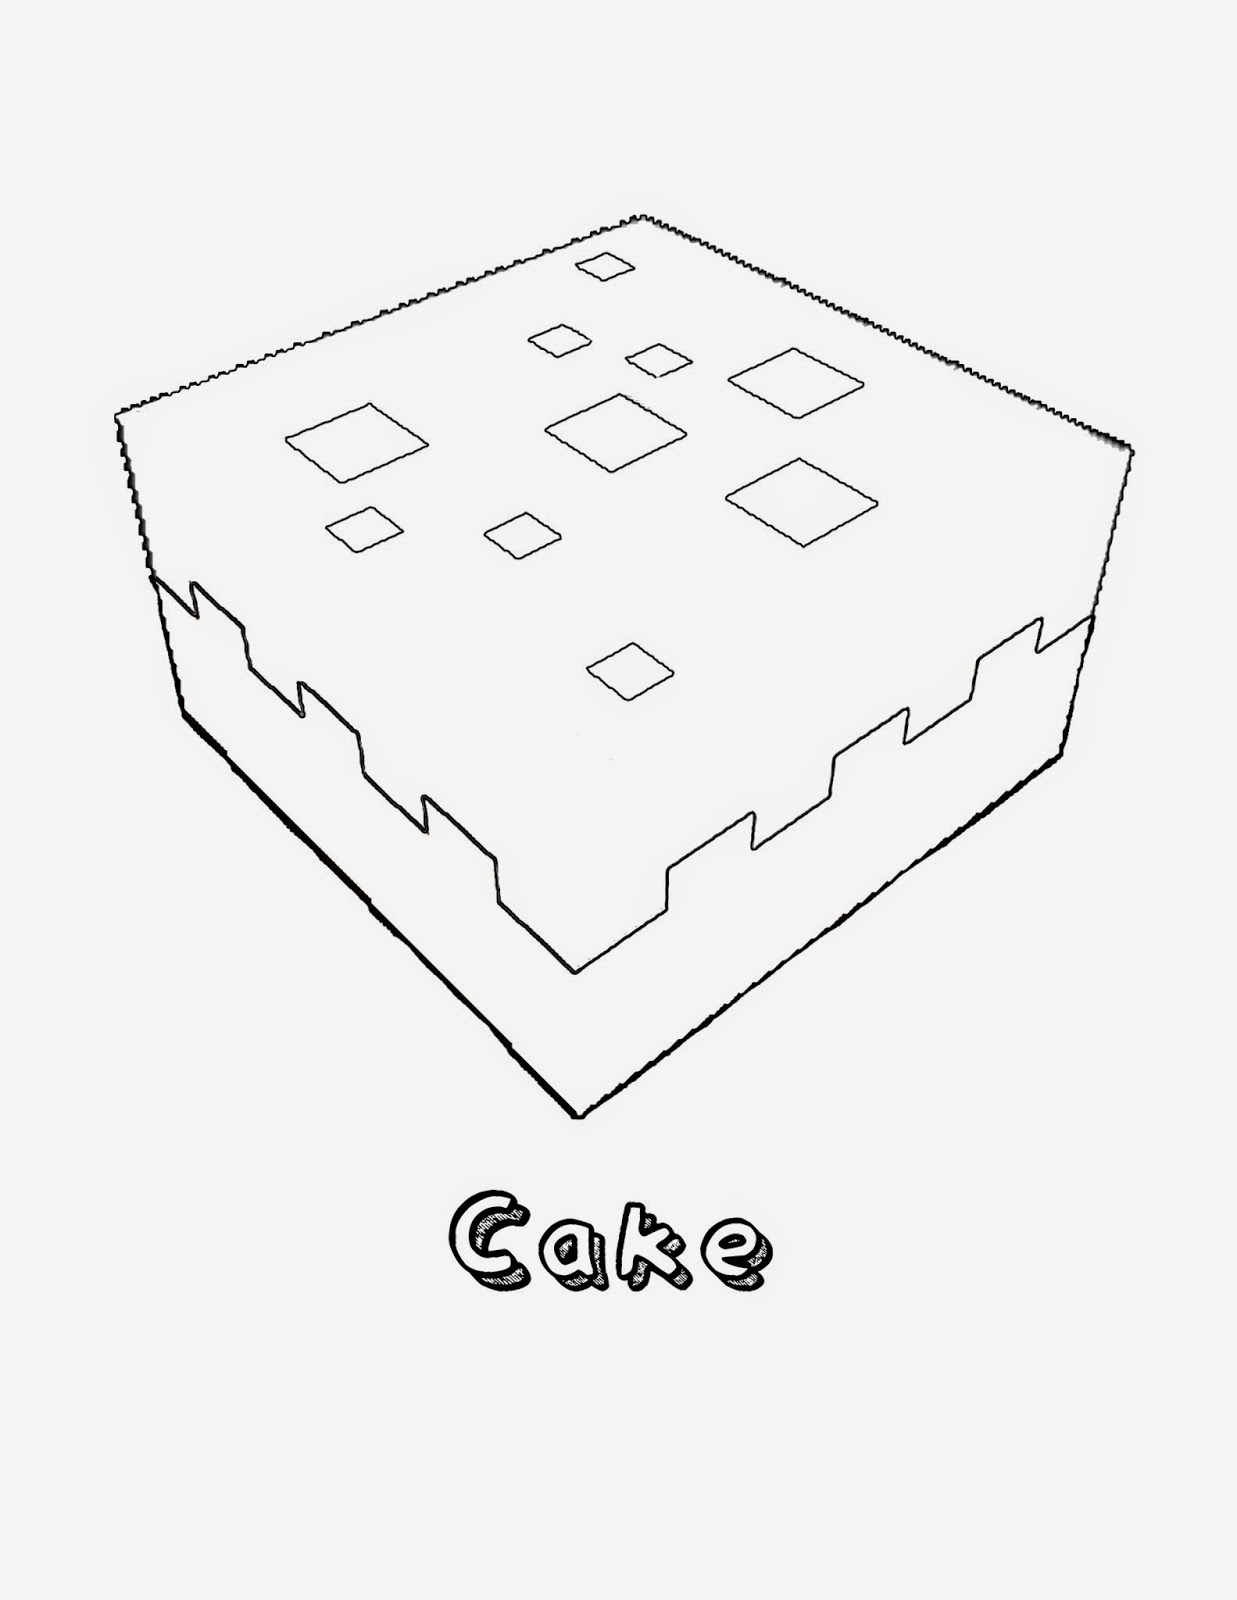 minecraft cake minecraft cake coloring pages printable coloring pages cake minecraft